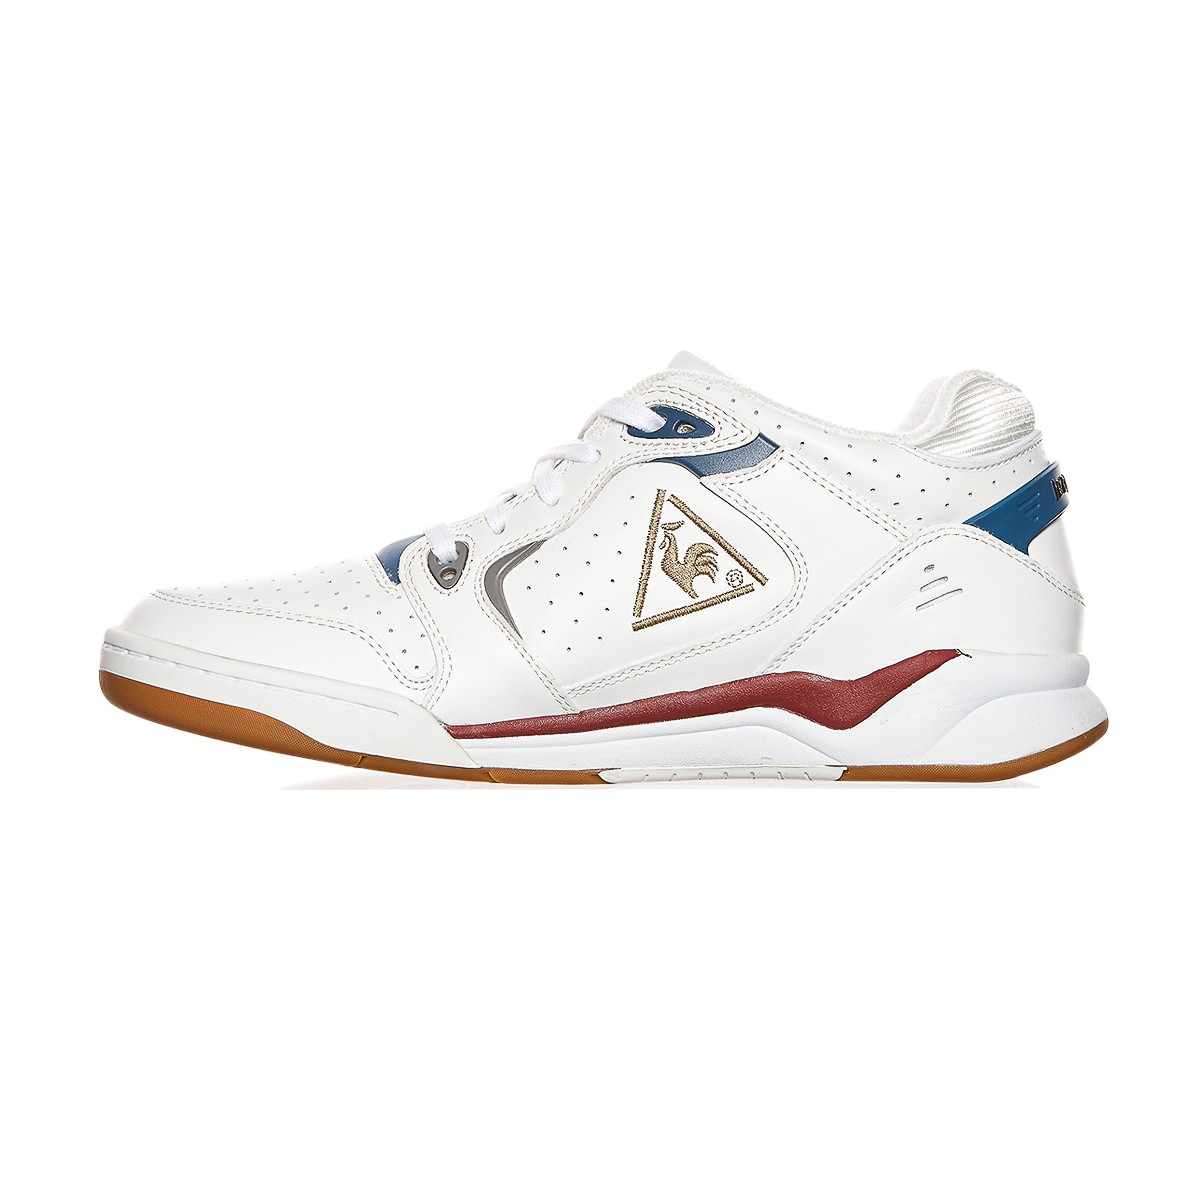 lyst le coq sportif lcs t4000 sneakers in white for men. Black Bedroom Furniture Sets. Home Design Ideas